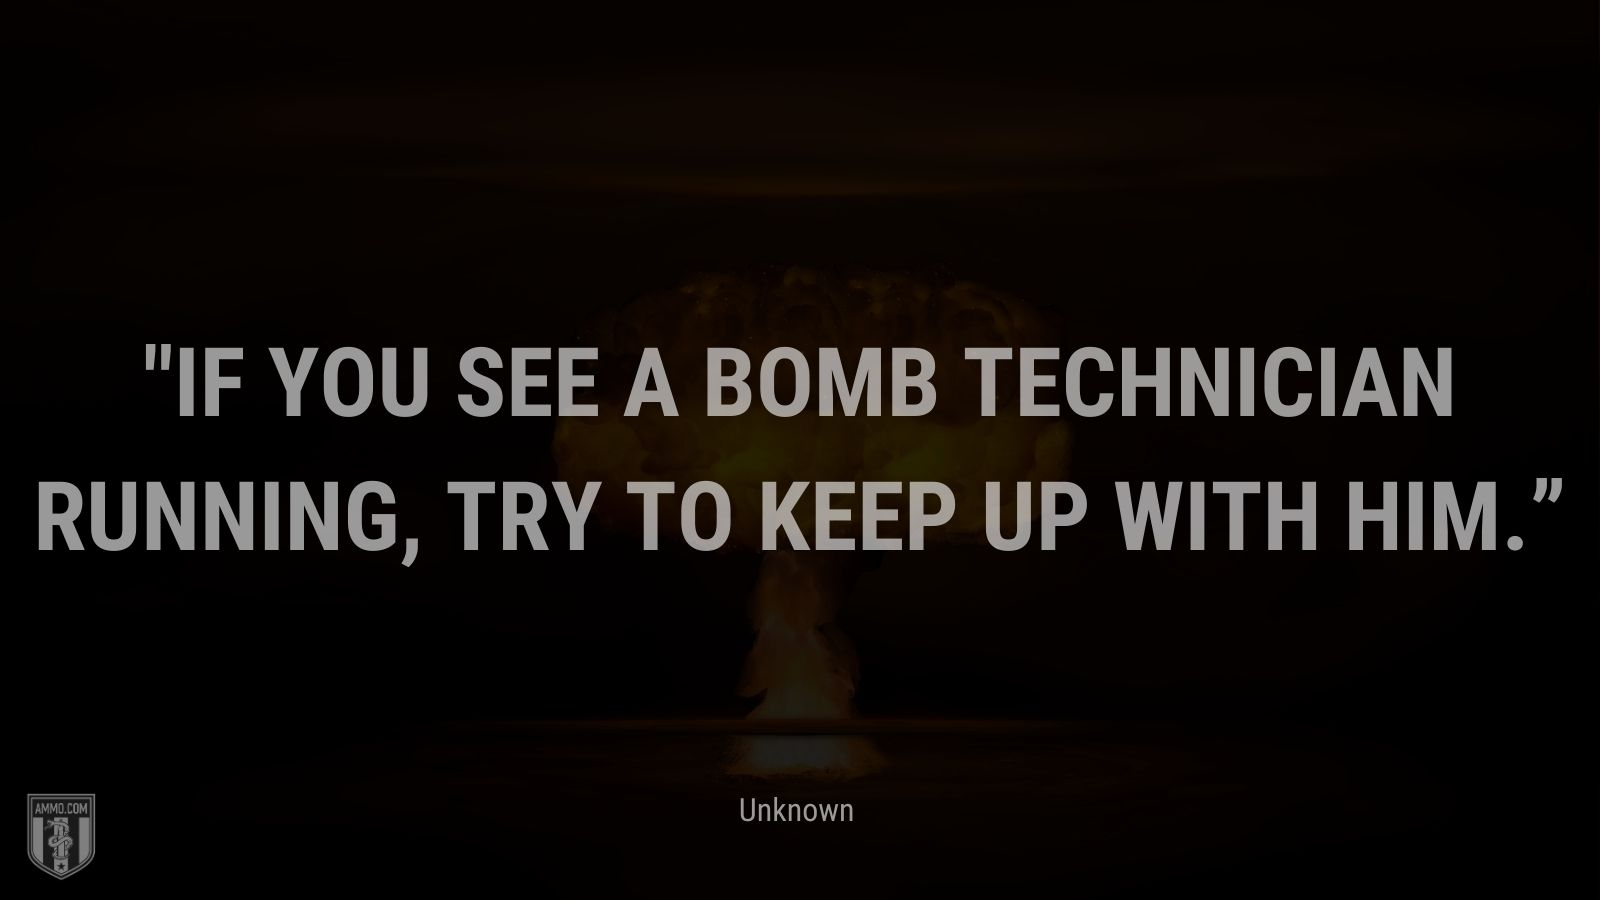 """""""If you see a bomb technician running, try to keep up with him."""" - Unknown"""